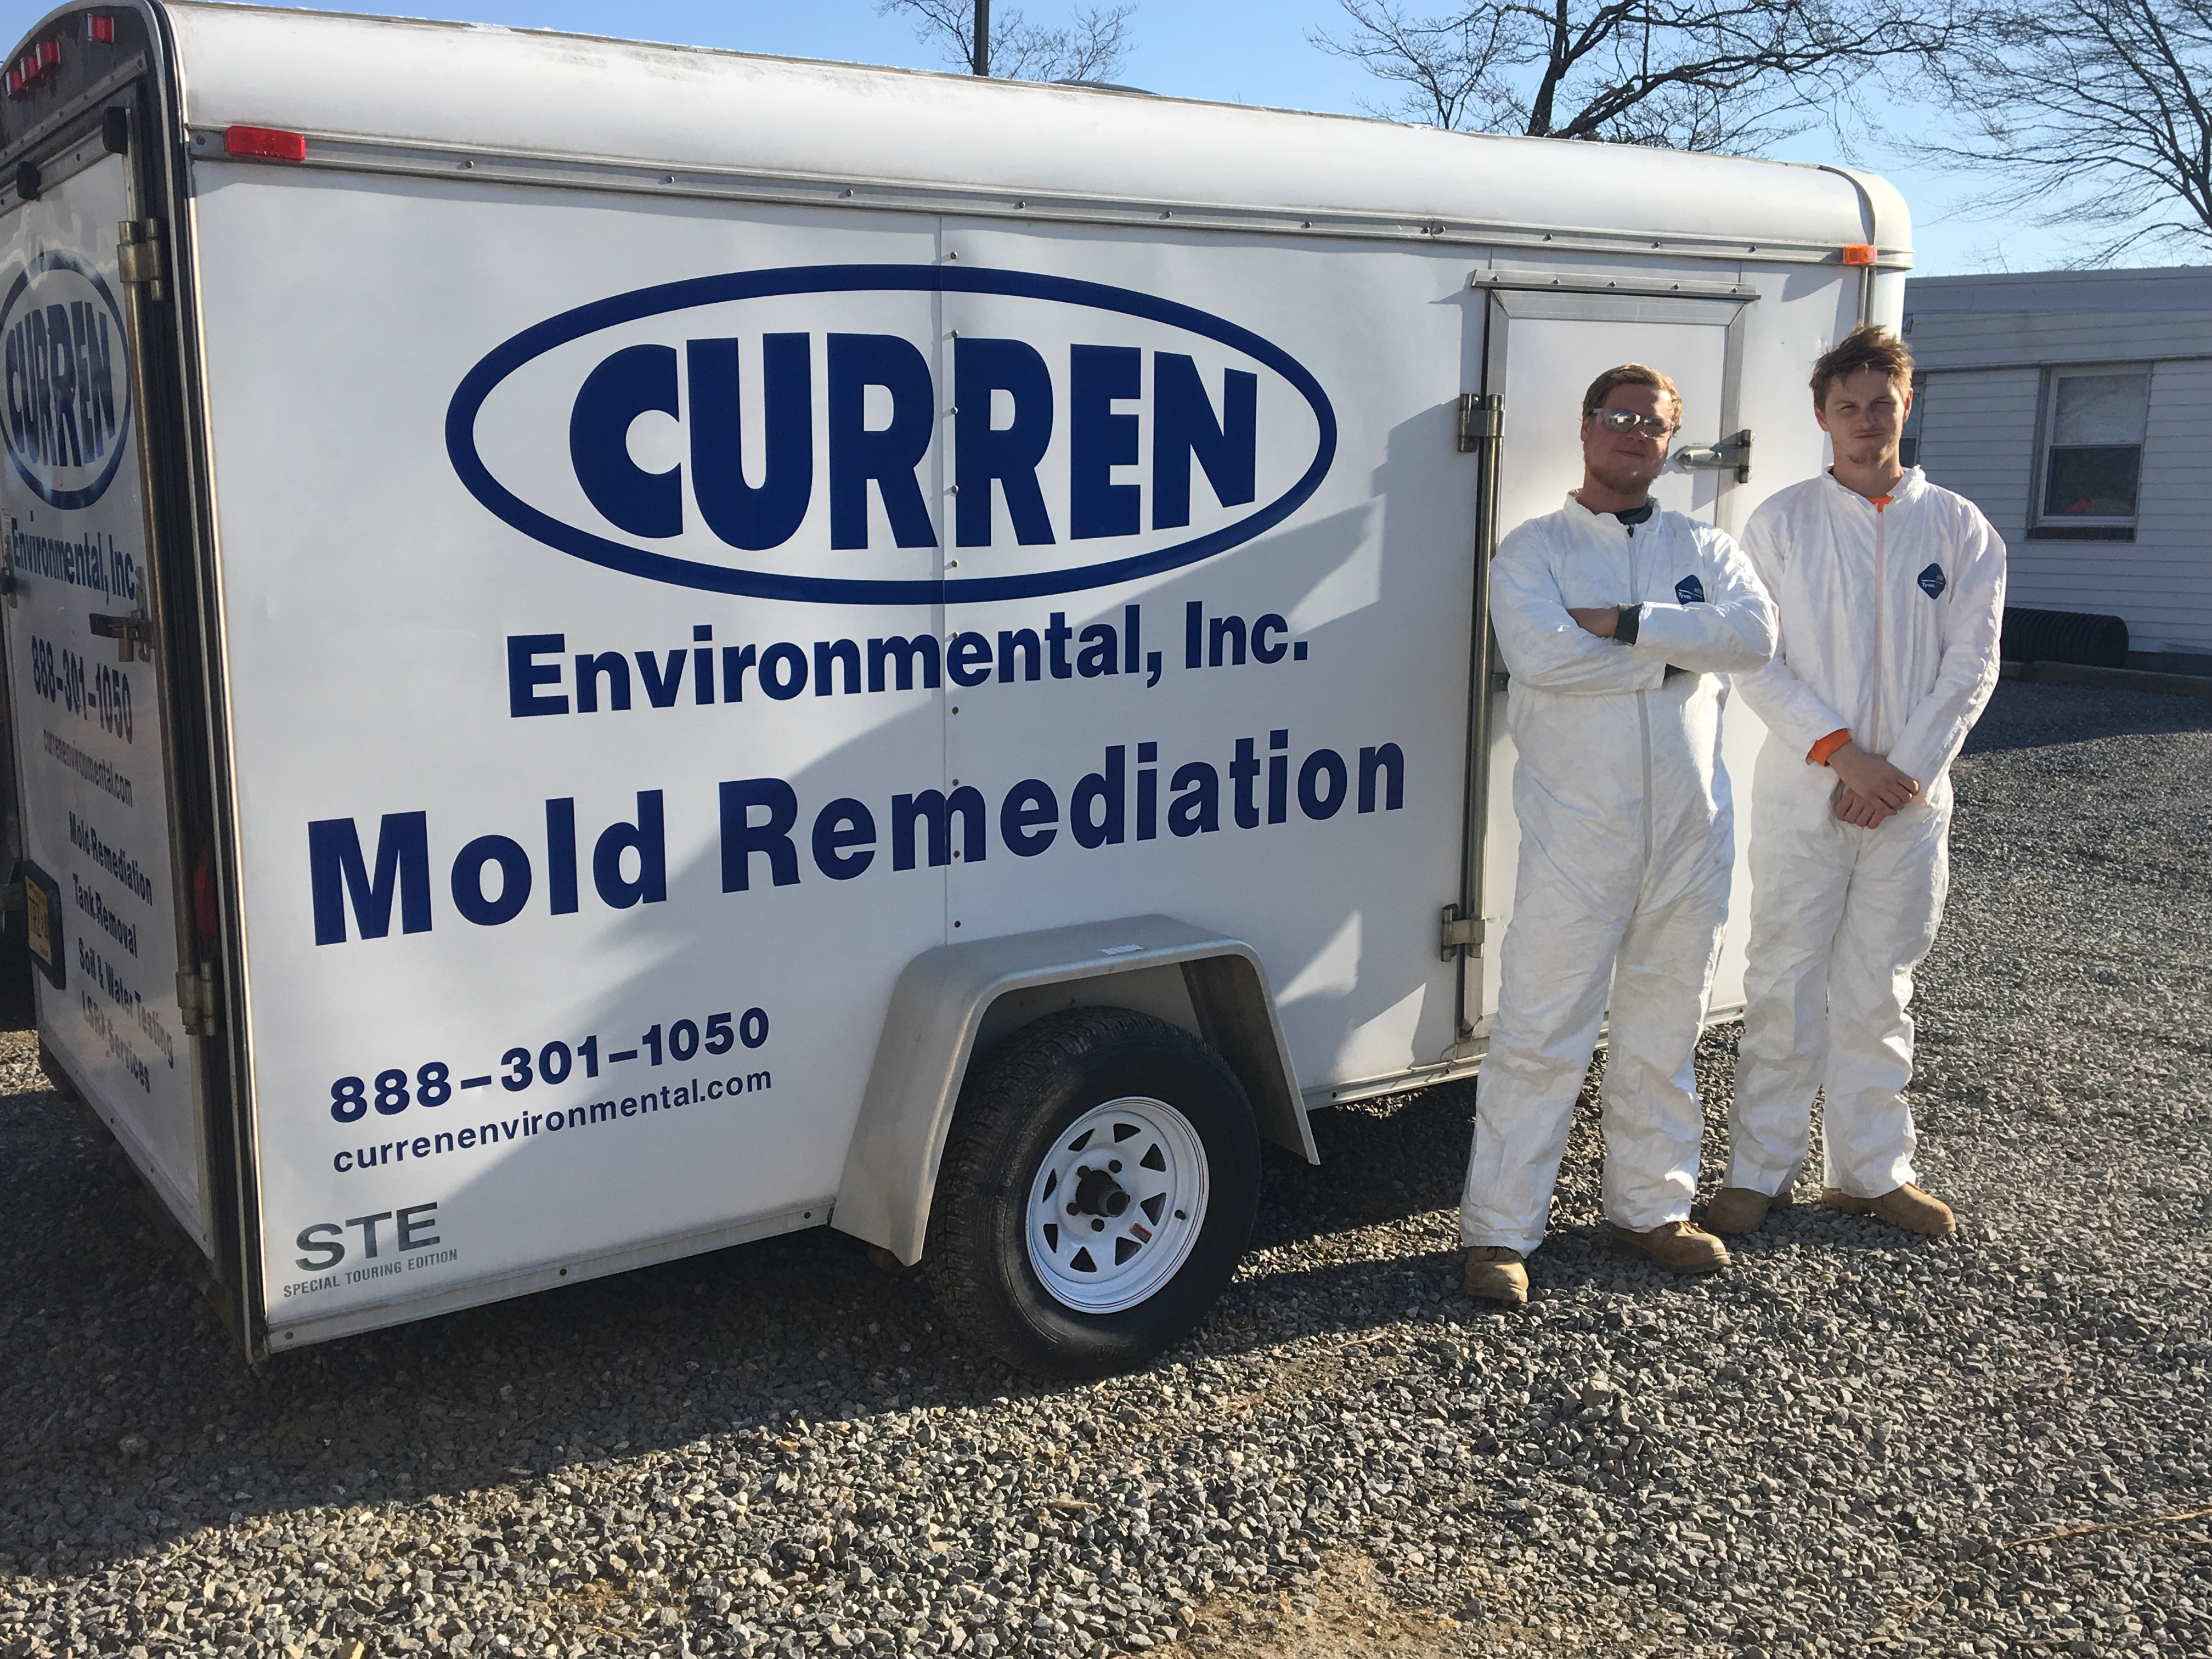 mold remedition trailer